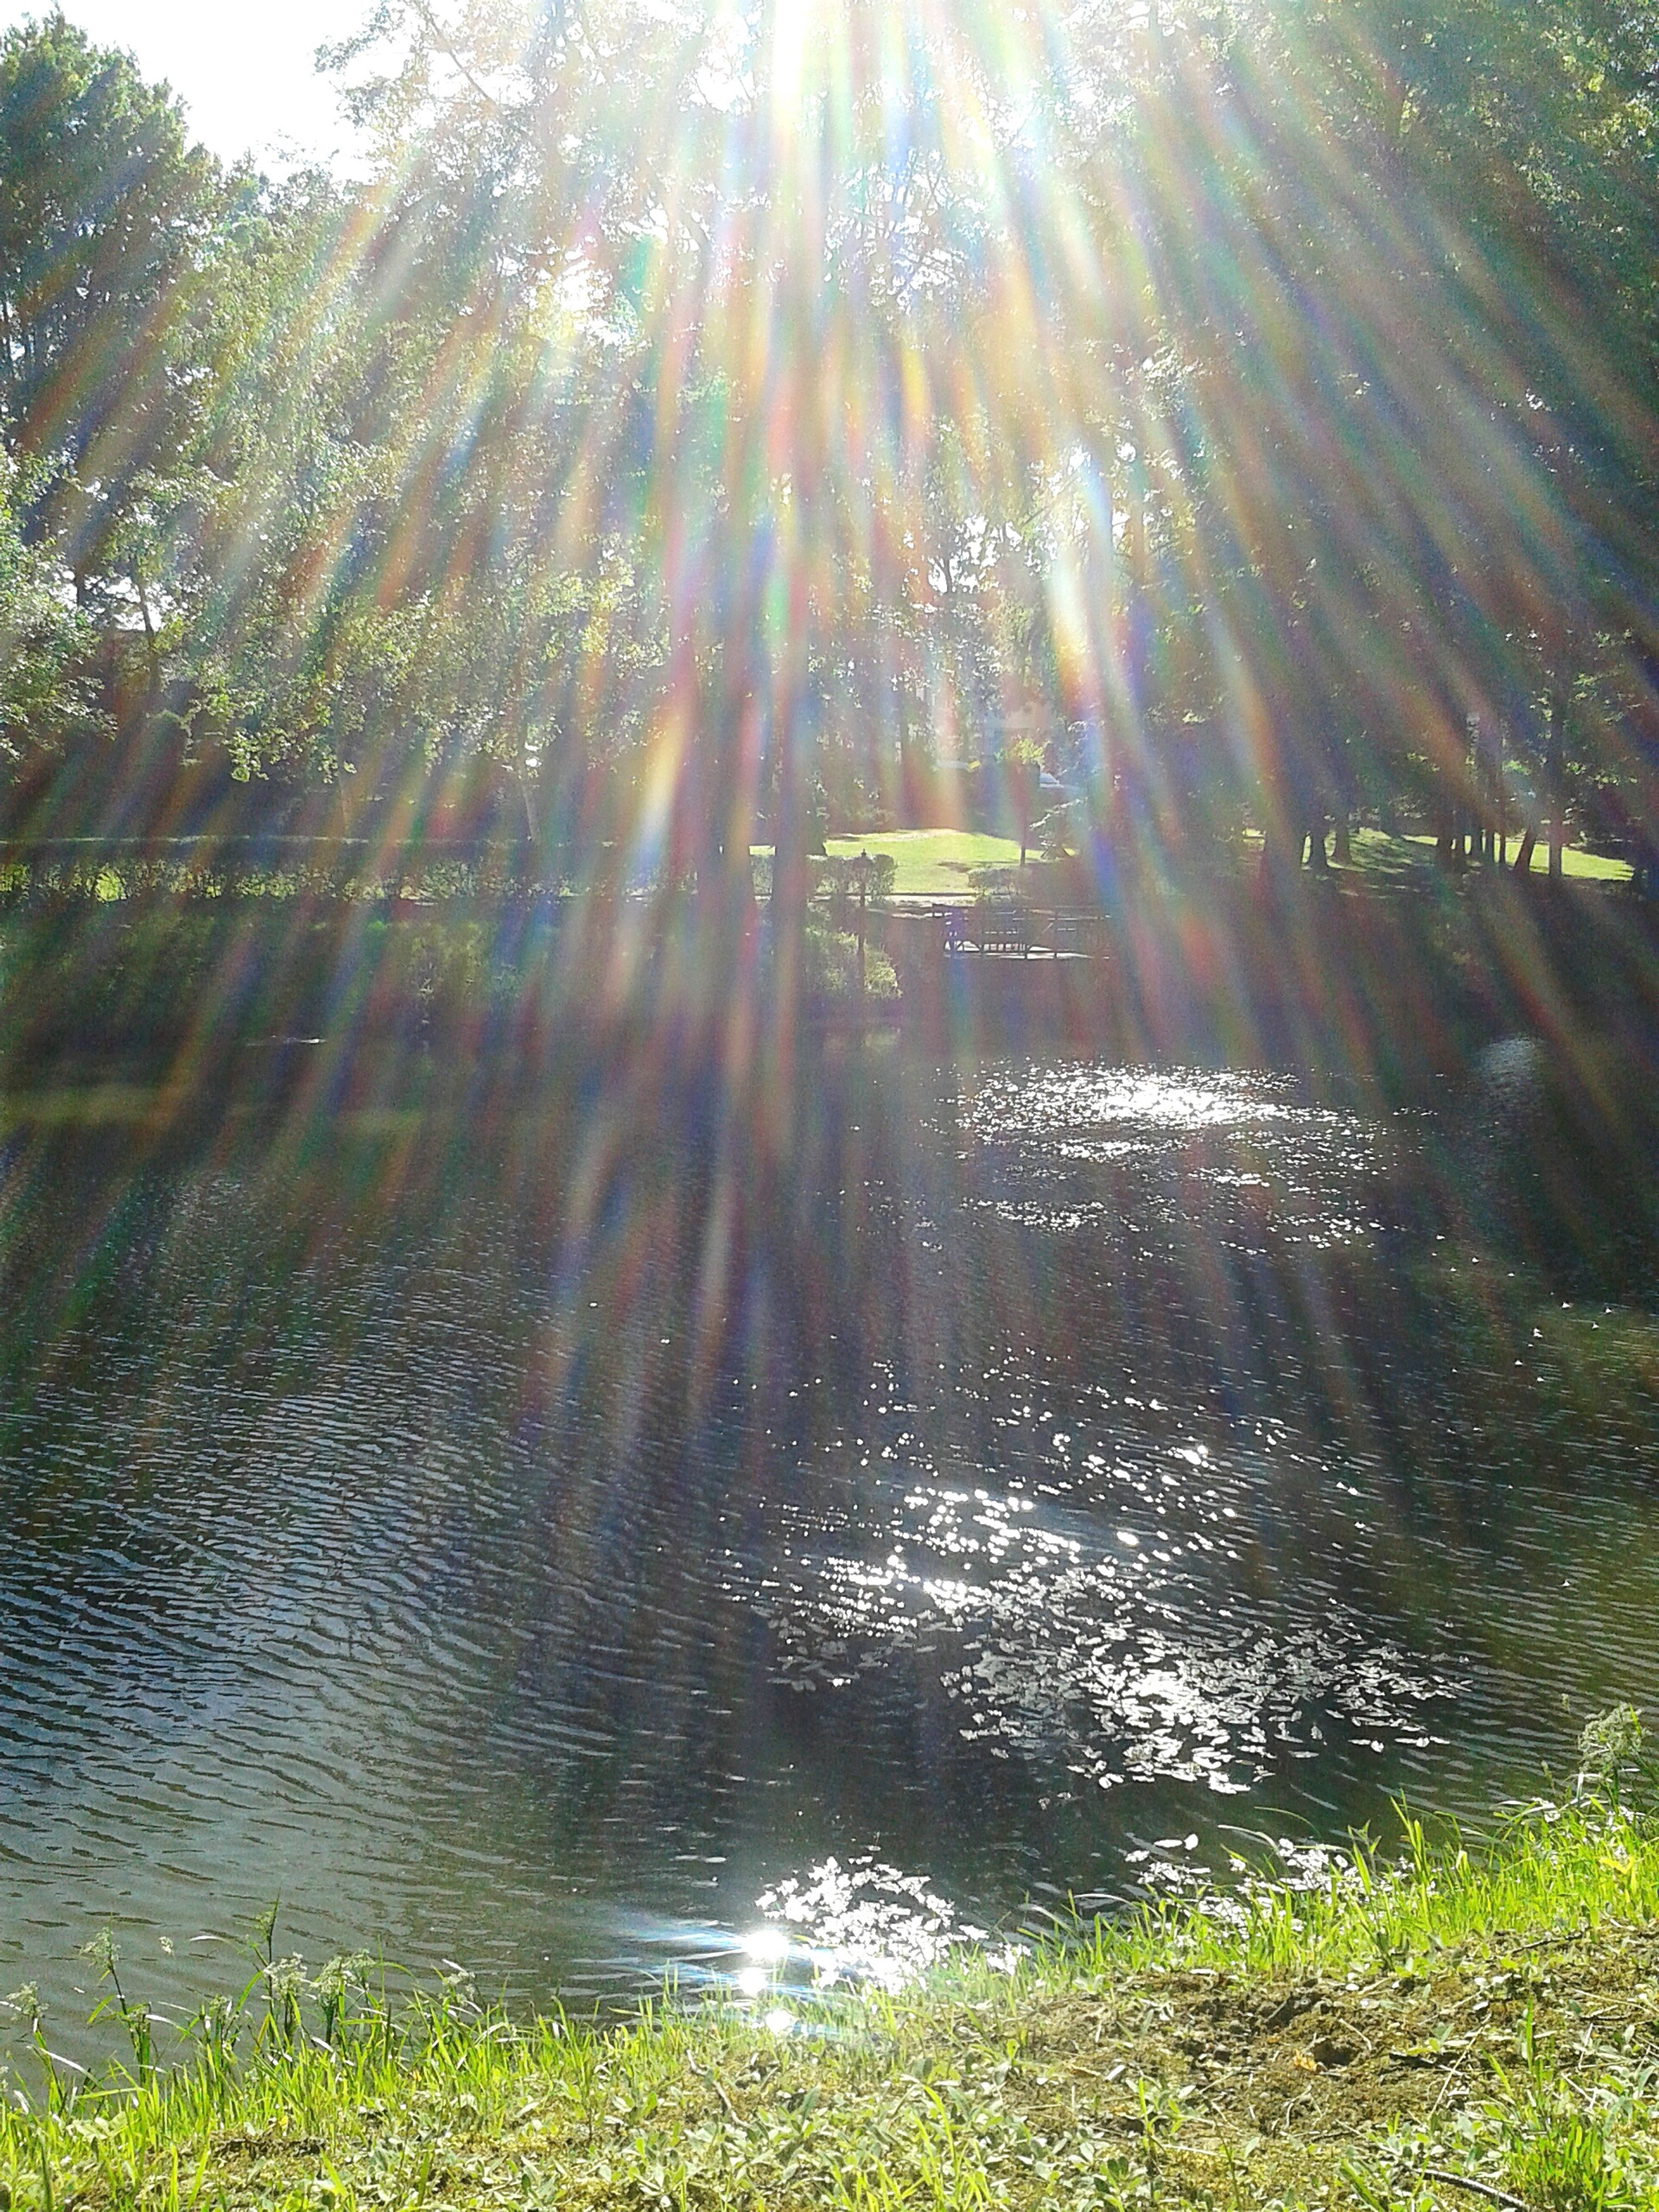 sun, sunbeam, sunlight, lens flare, water, tree, tranquility, sunny, tranquil scene, grass, reflection, beauty in nature, growth, nature, scenics, bright, green color, idyllic, day, outdoors